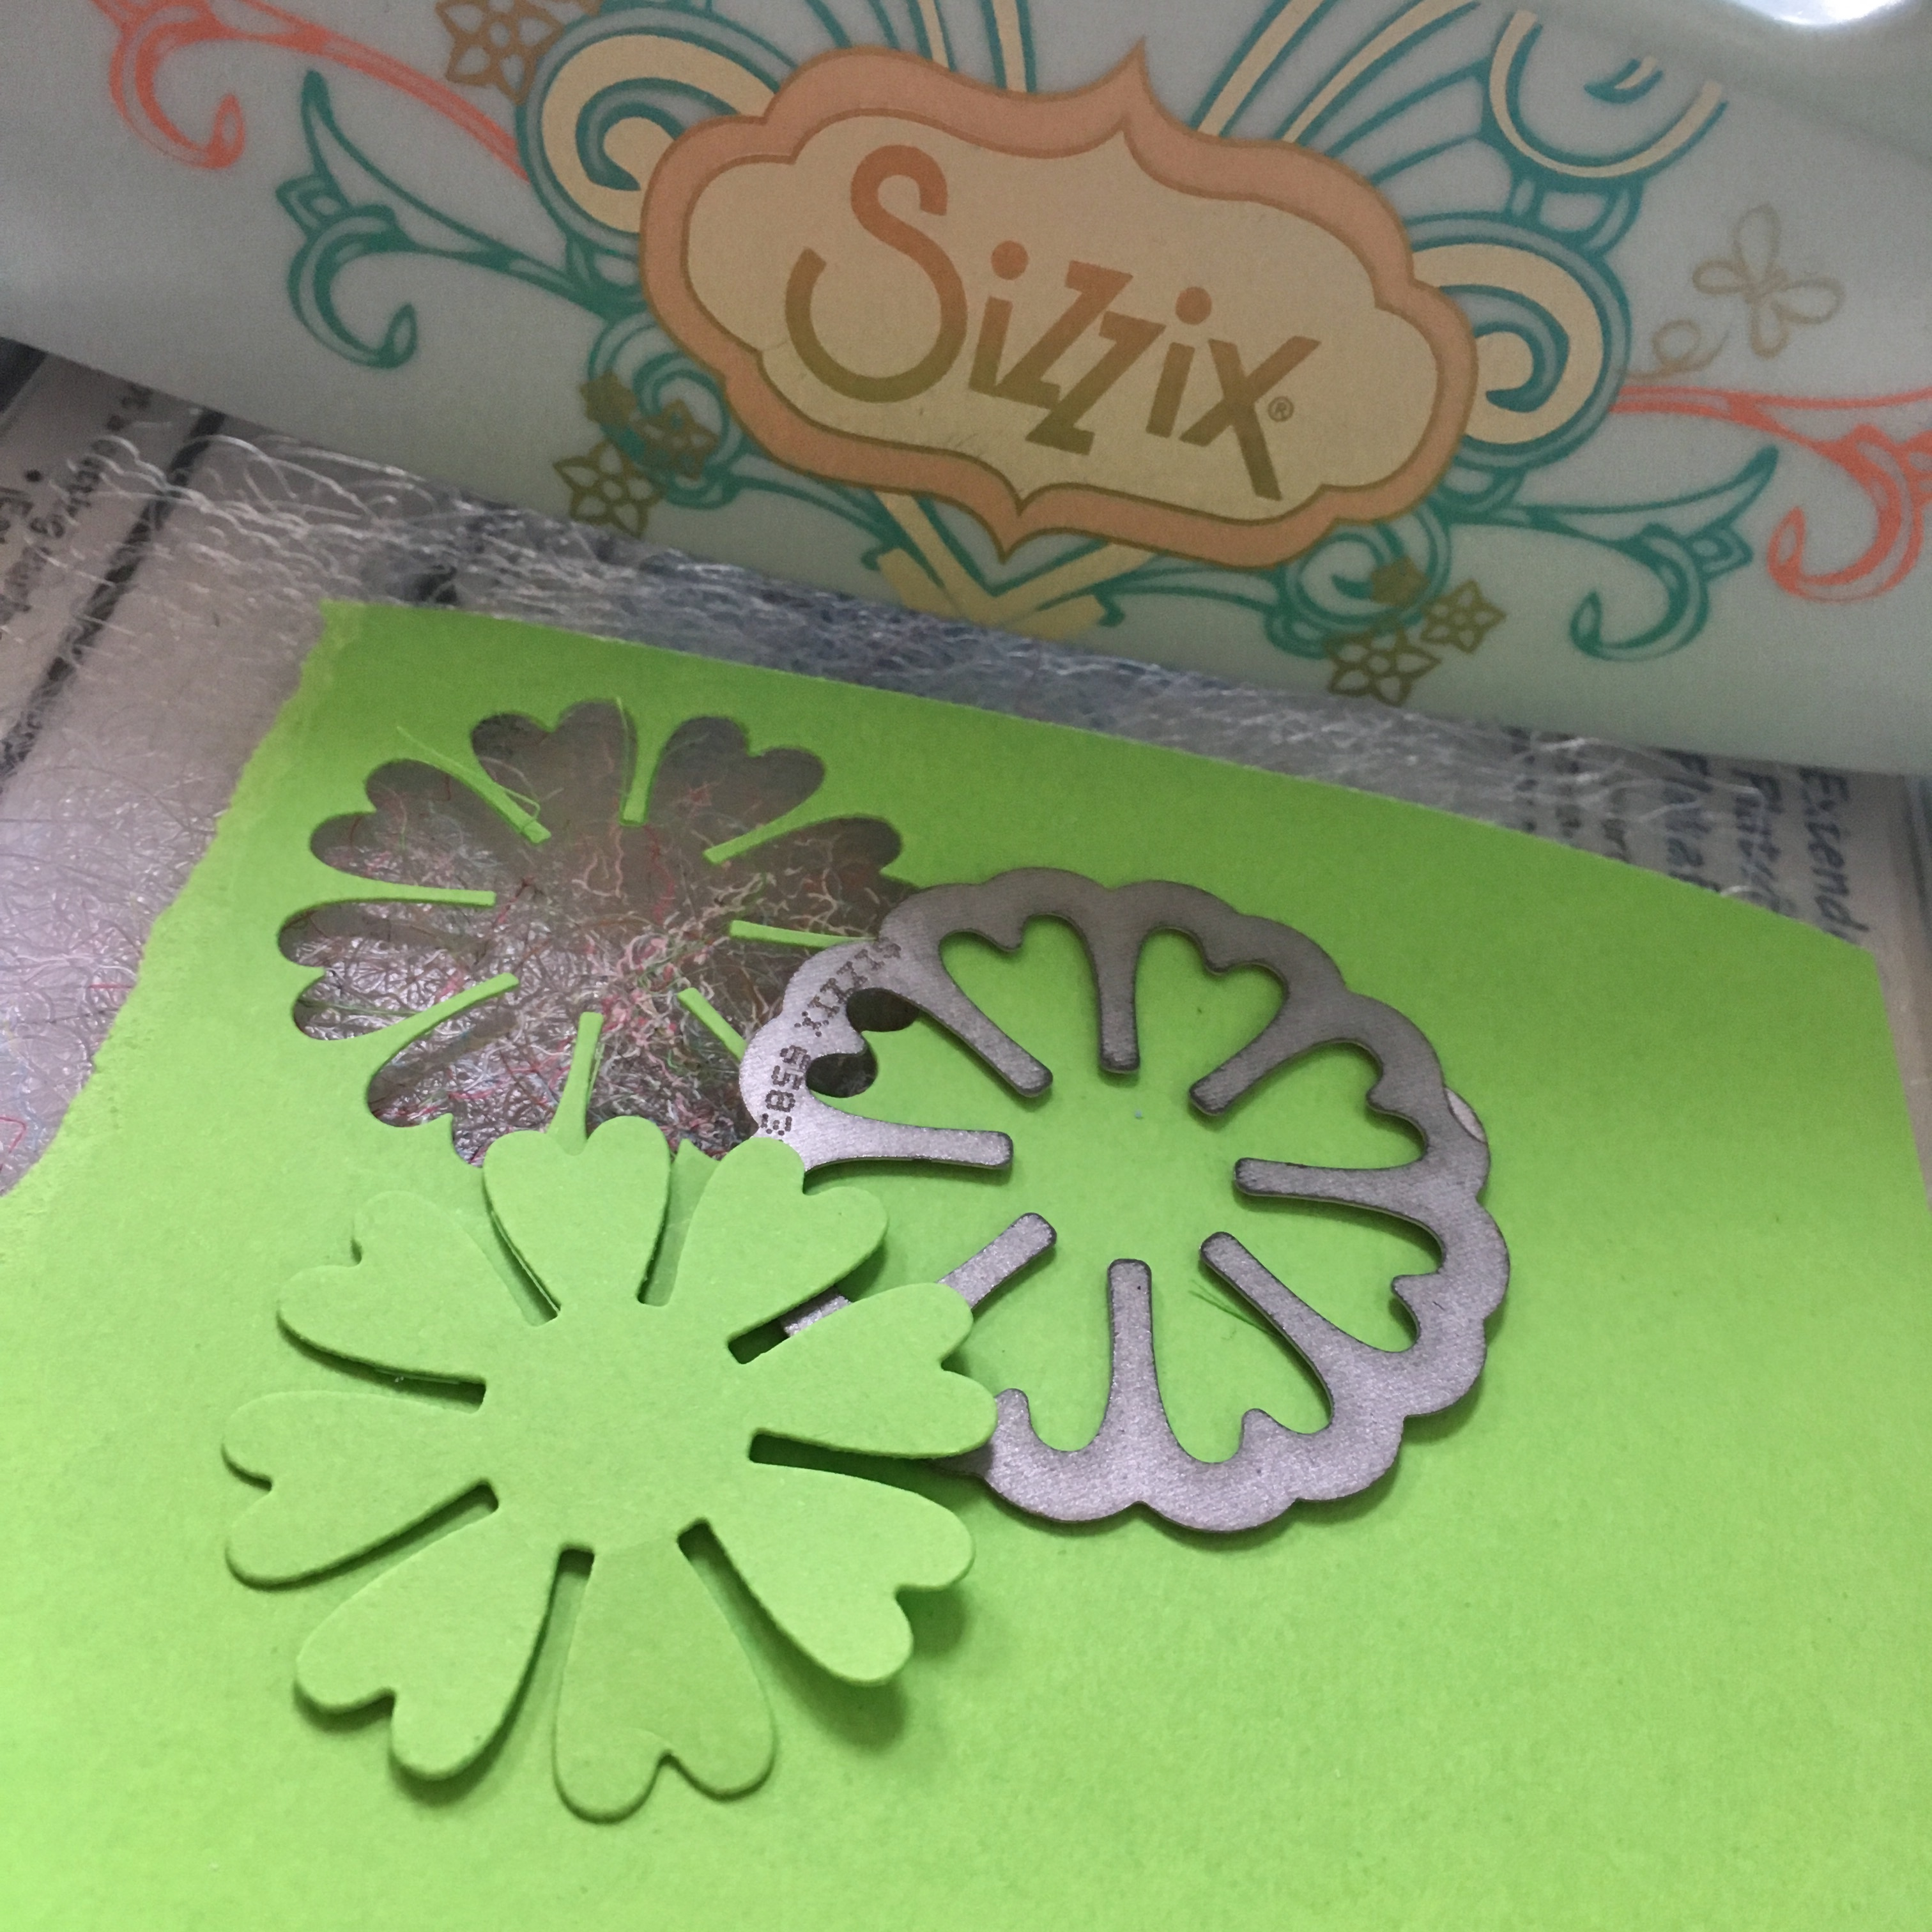 Sizzix cutting machine with floral dies and green paper